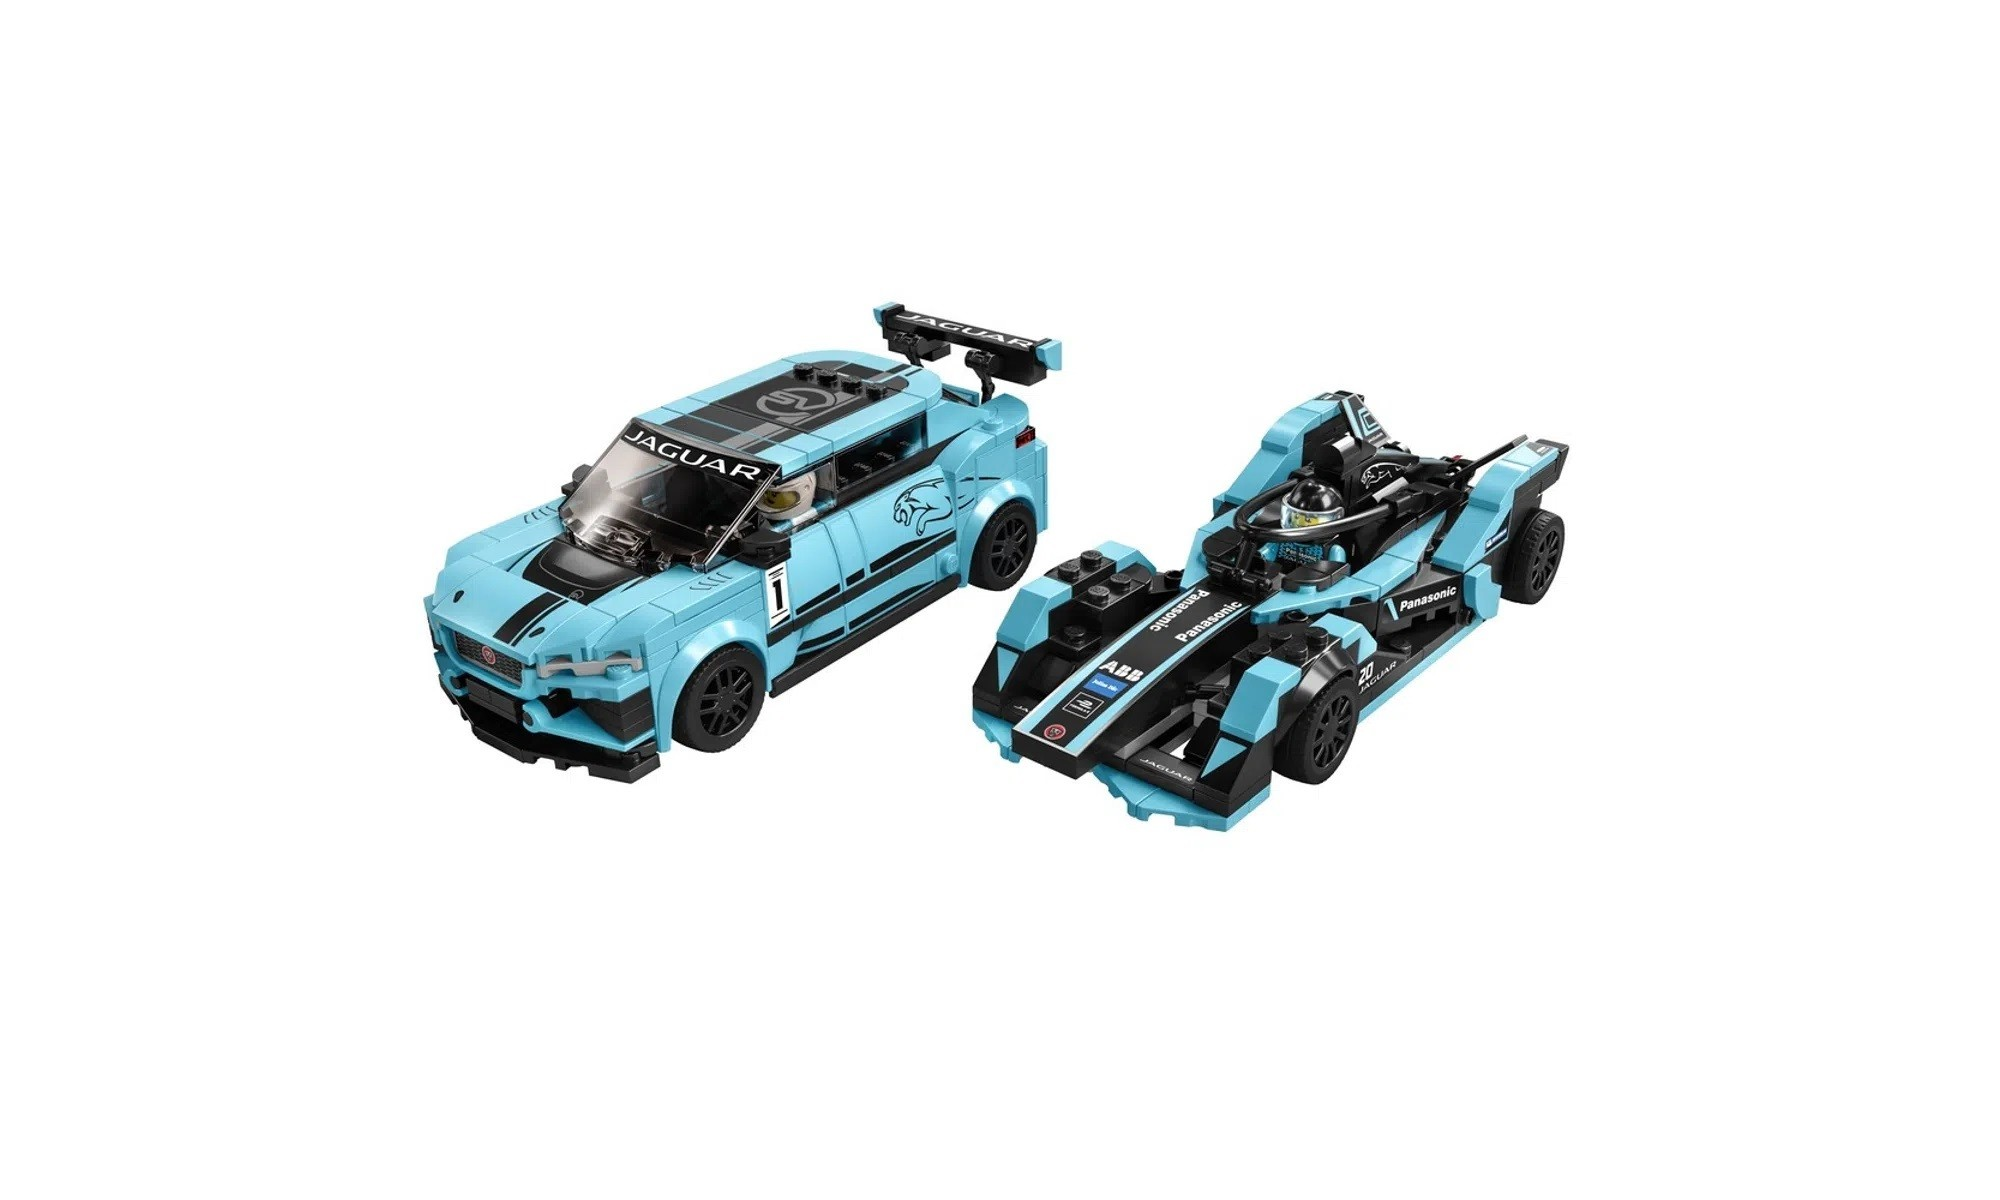 LEGO Speed Champions - Formula E Panasonic Jaguar Racing GEN2 car E Jaguar I-PACE eTROPH